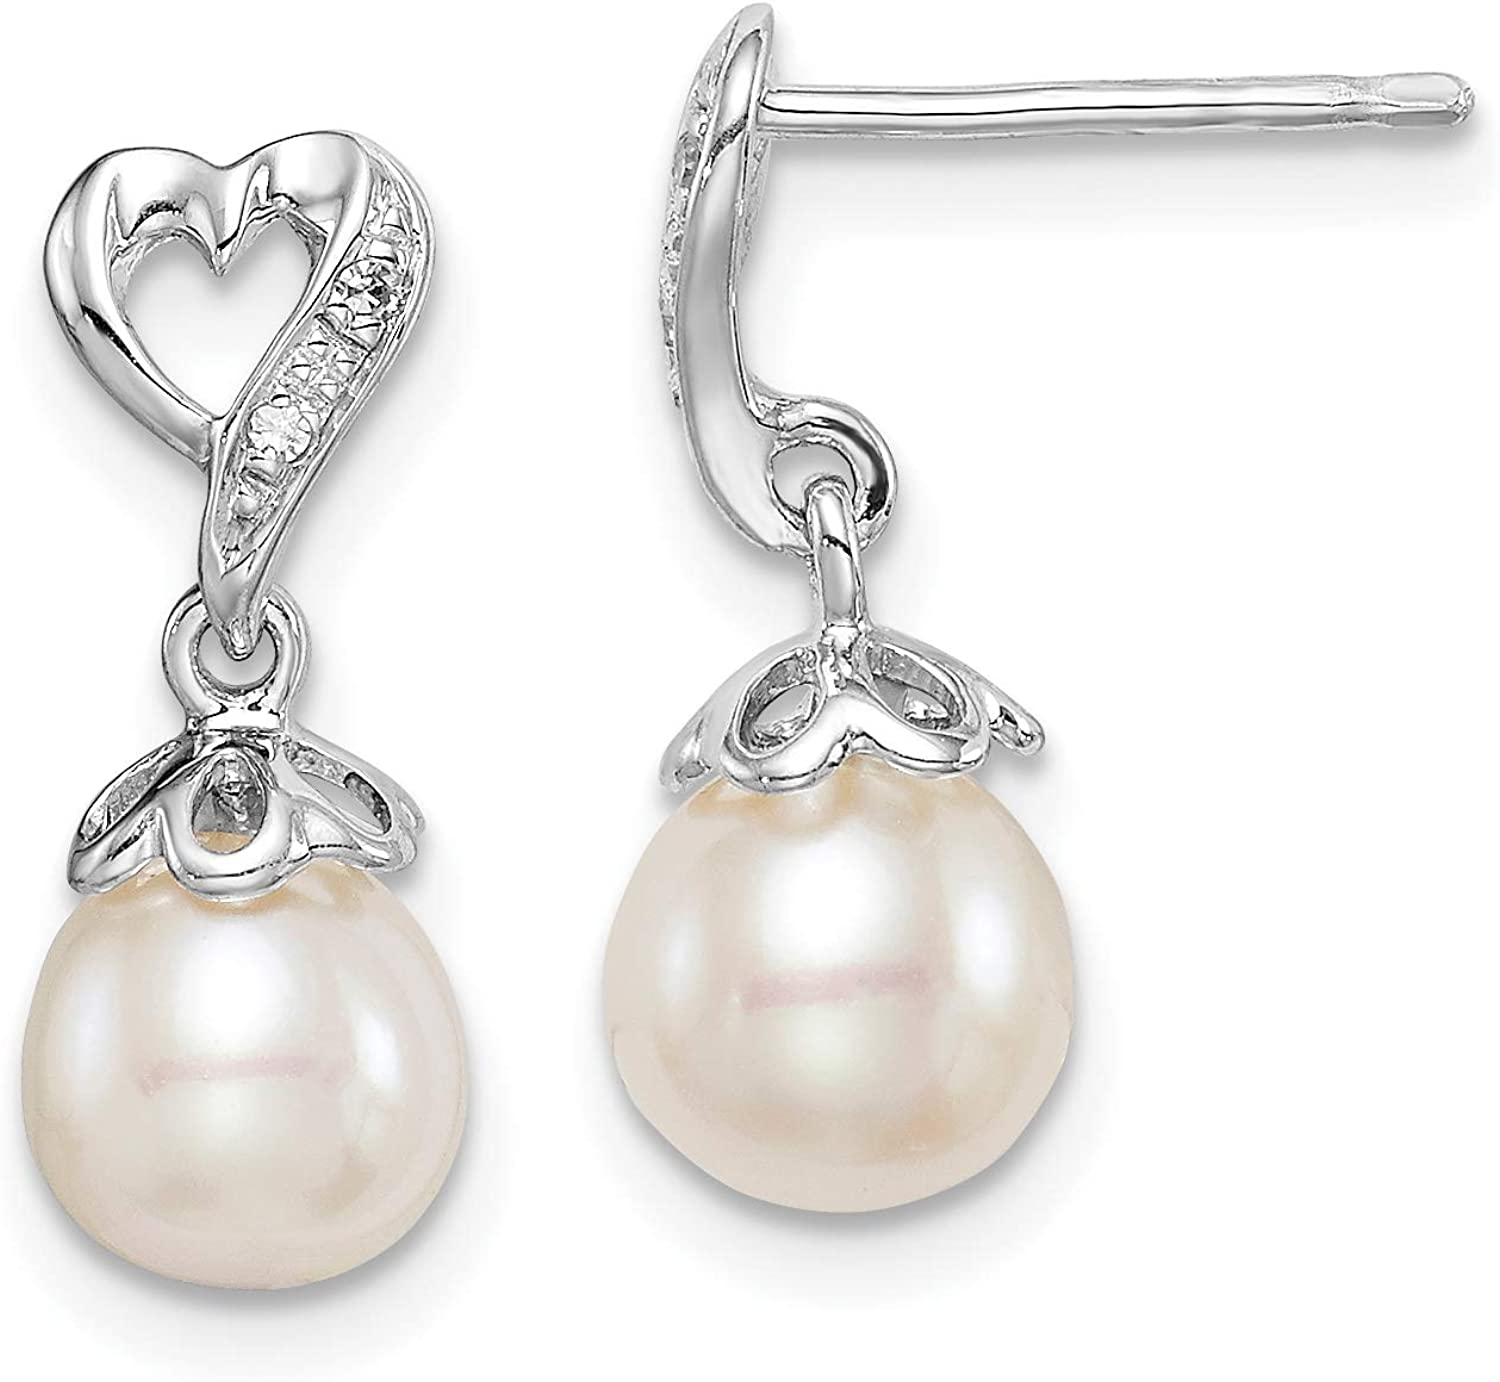 925 Sterling Silver Rhod Plated Diamond and Cultured Pearl Post Dangle Ear